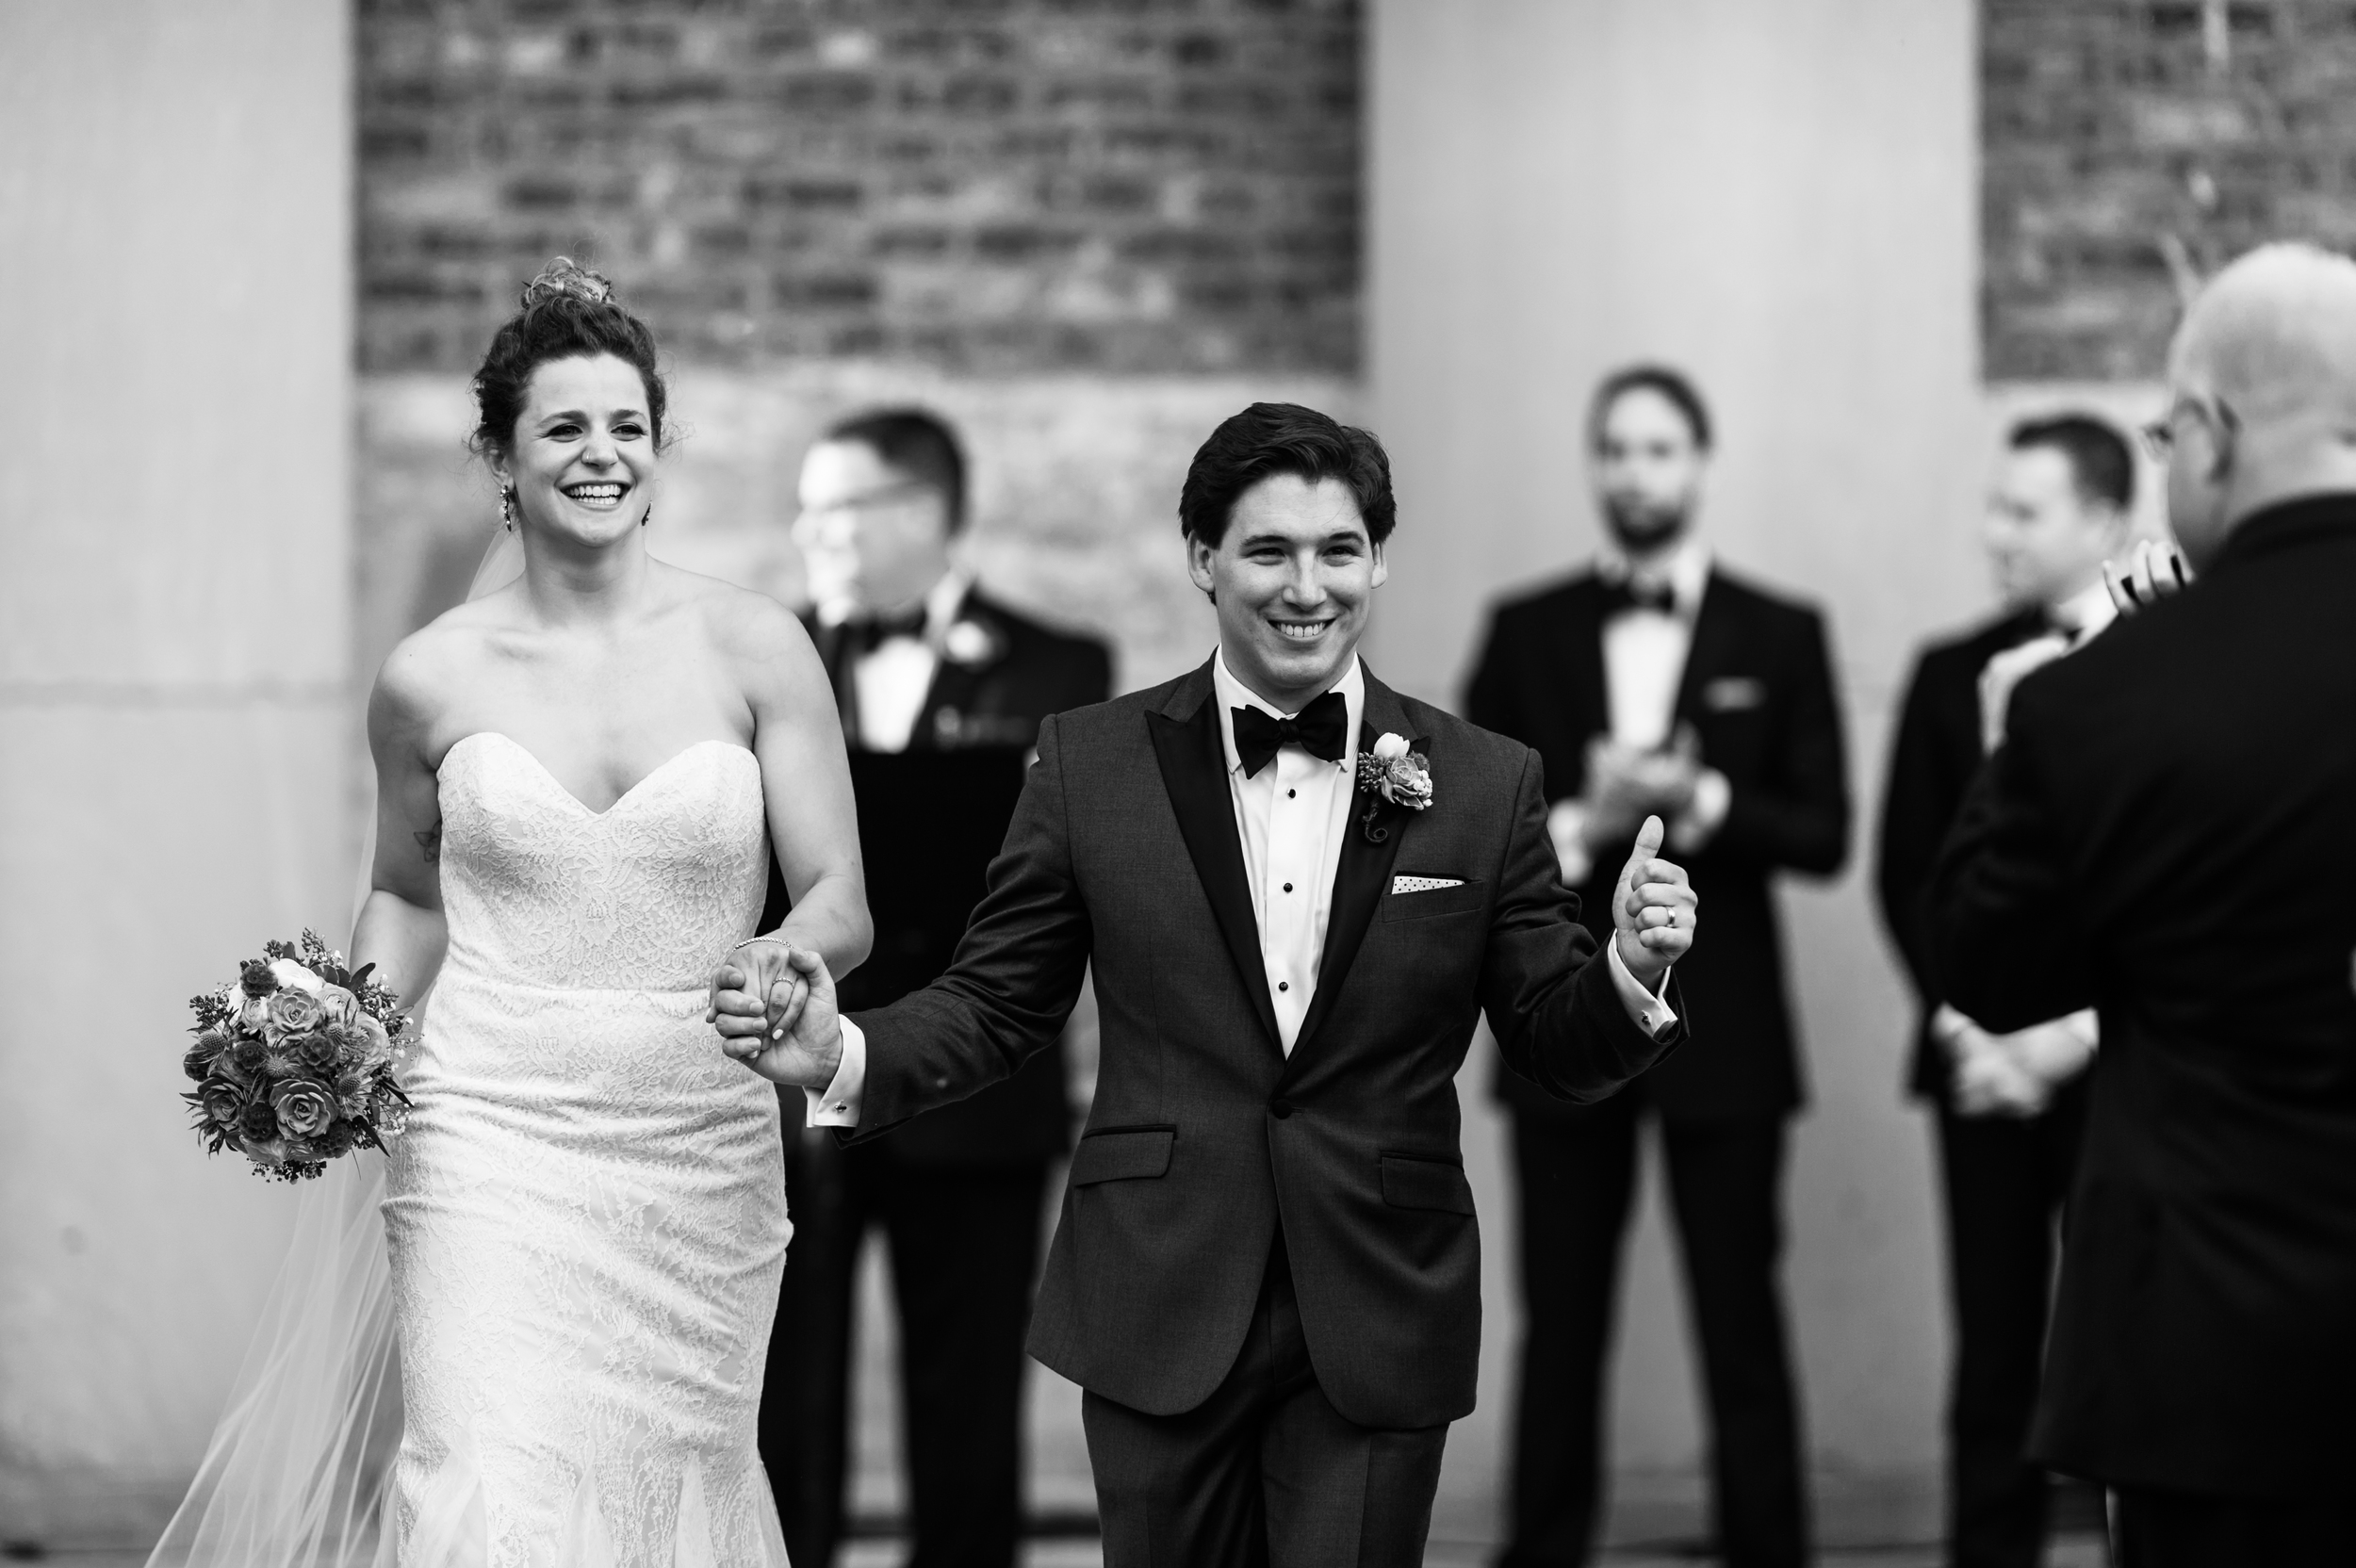 Chicago Wedding Photography at Architectural artifacts